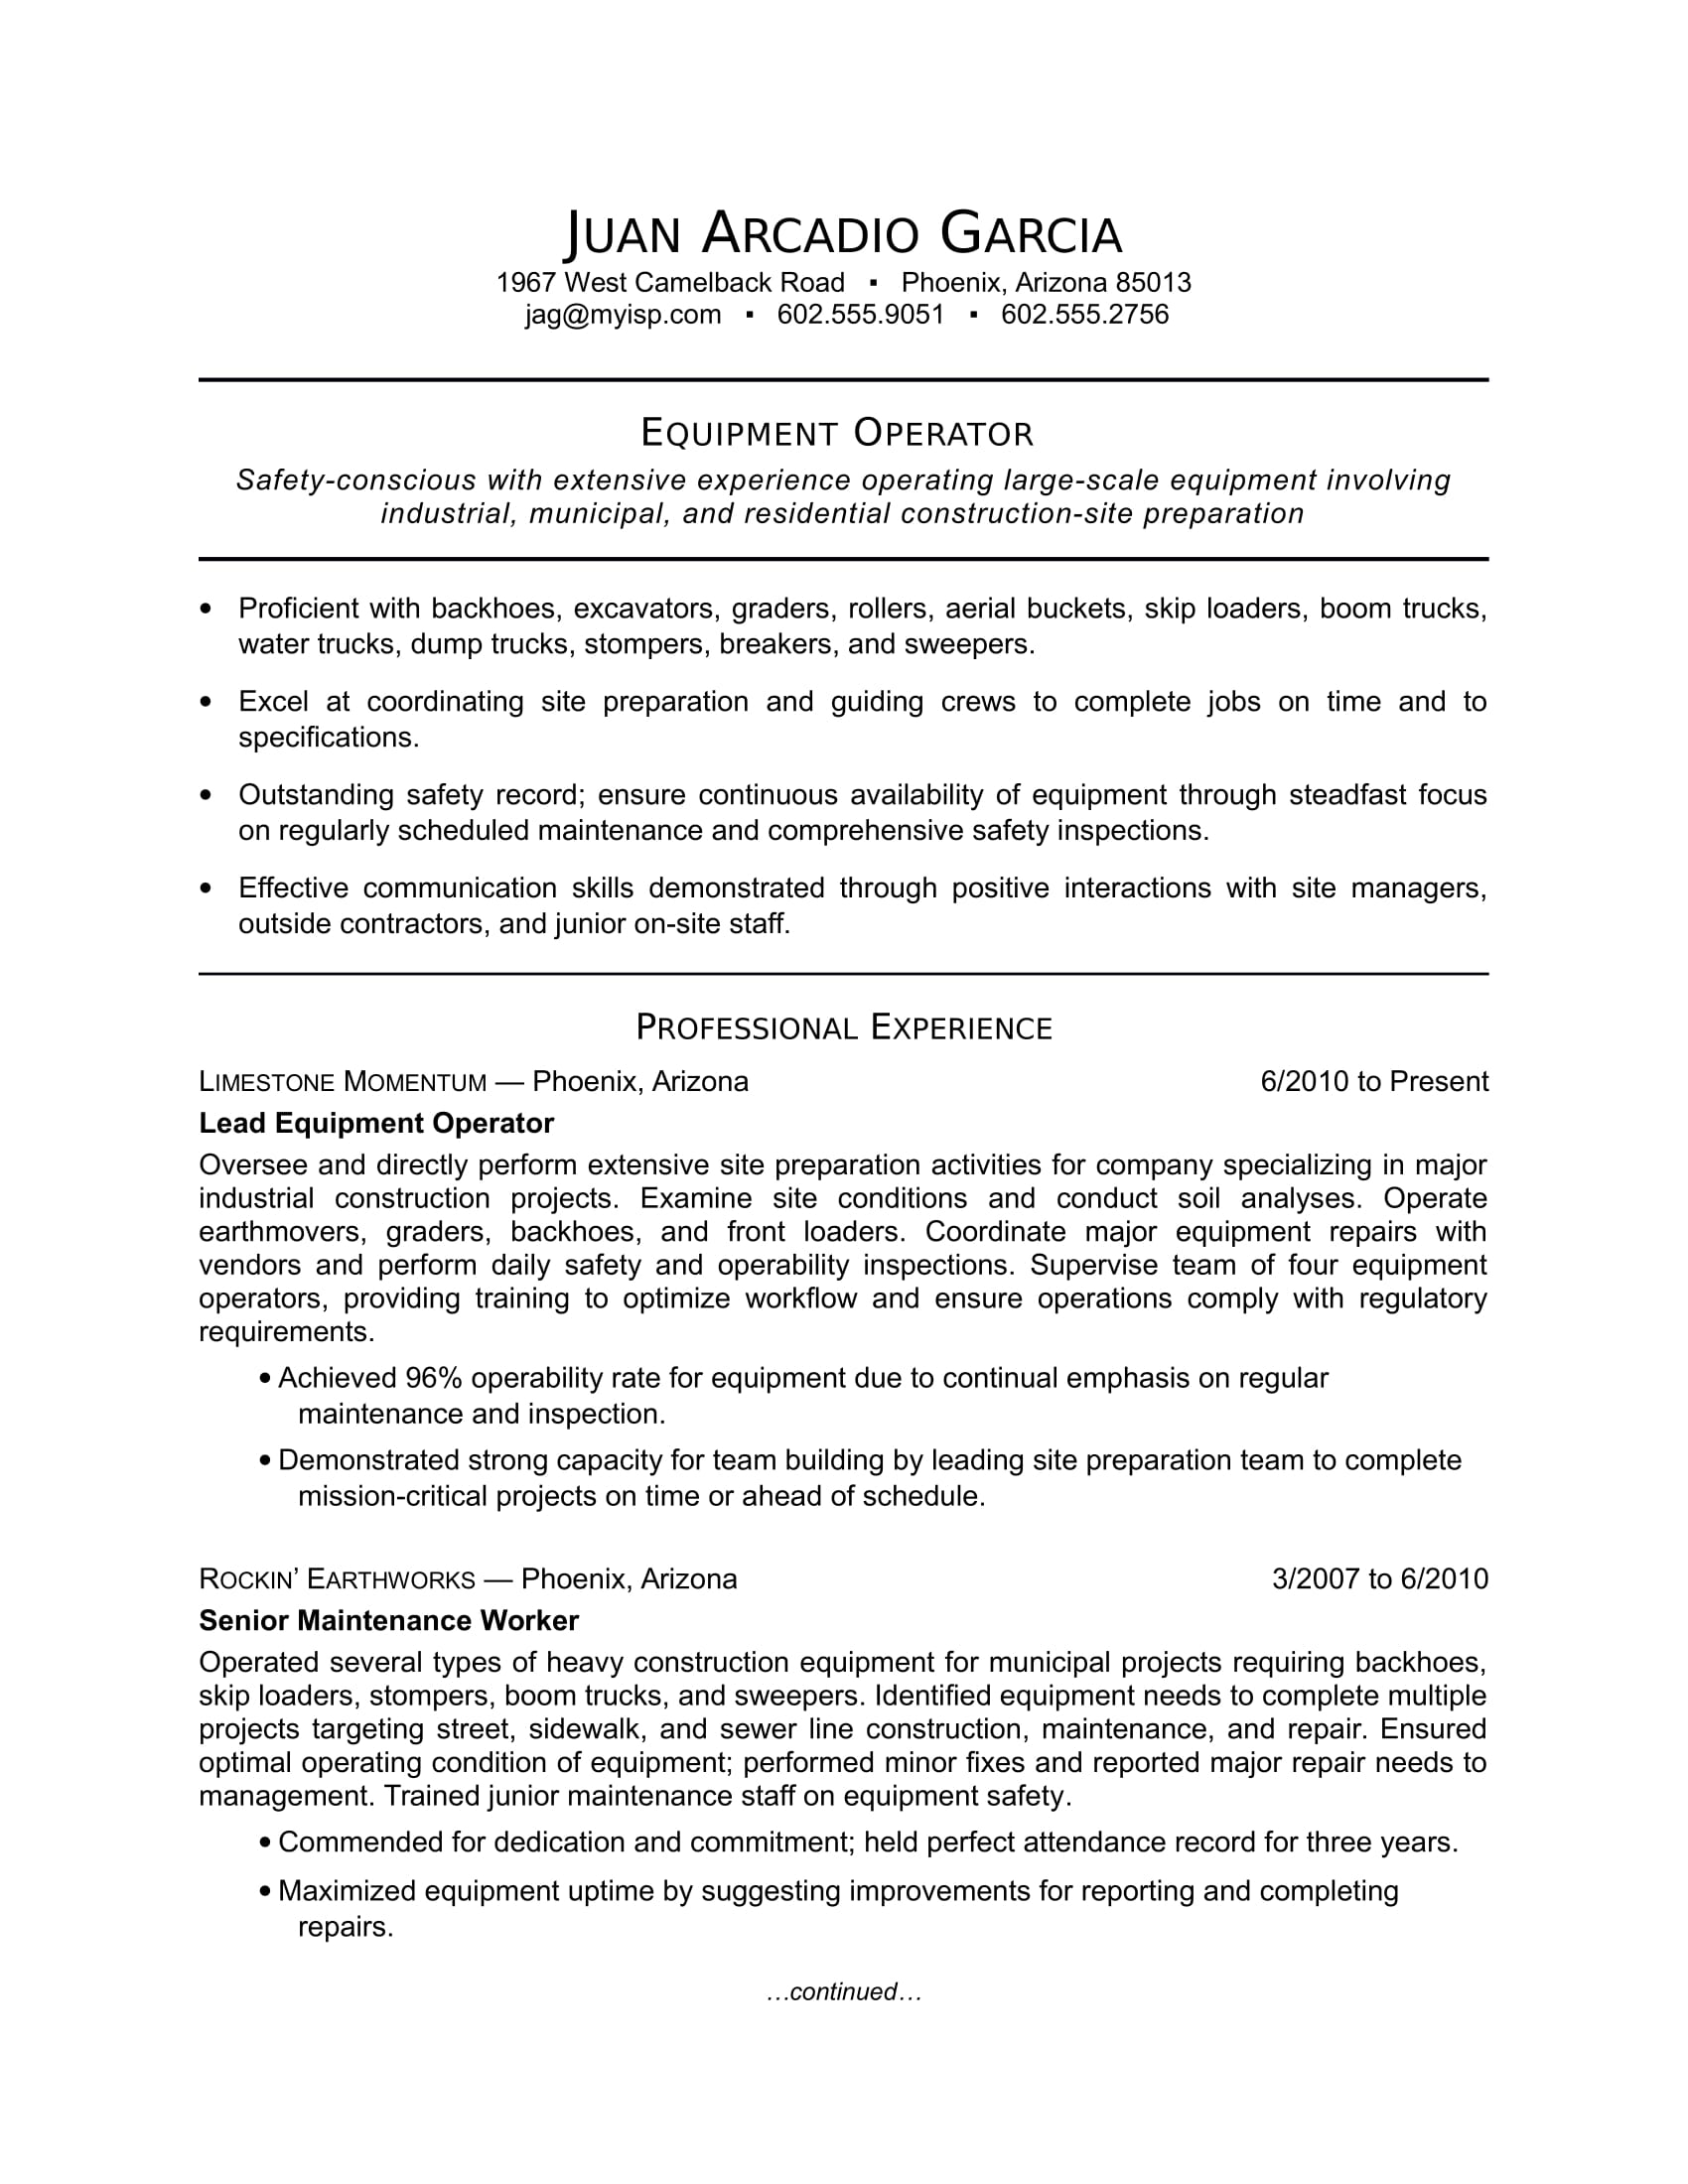 machine operator resume no experience